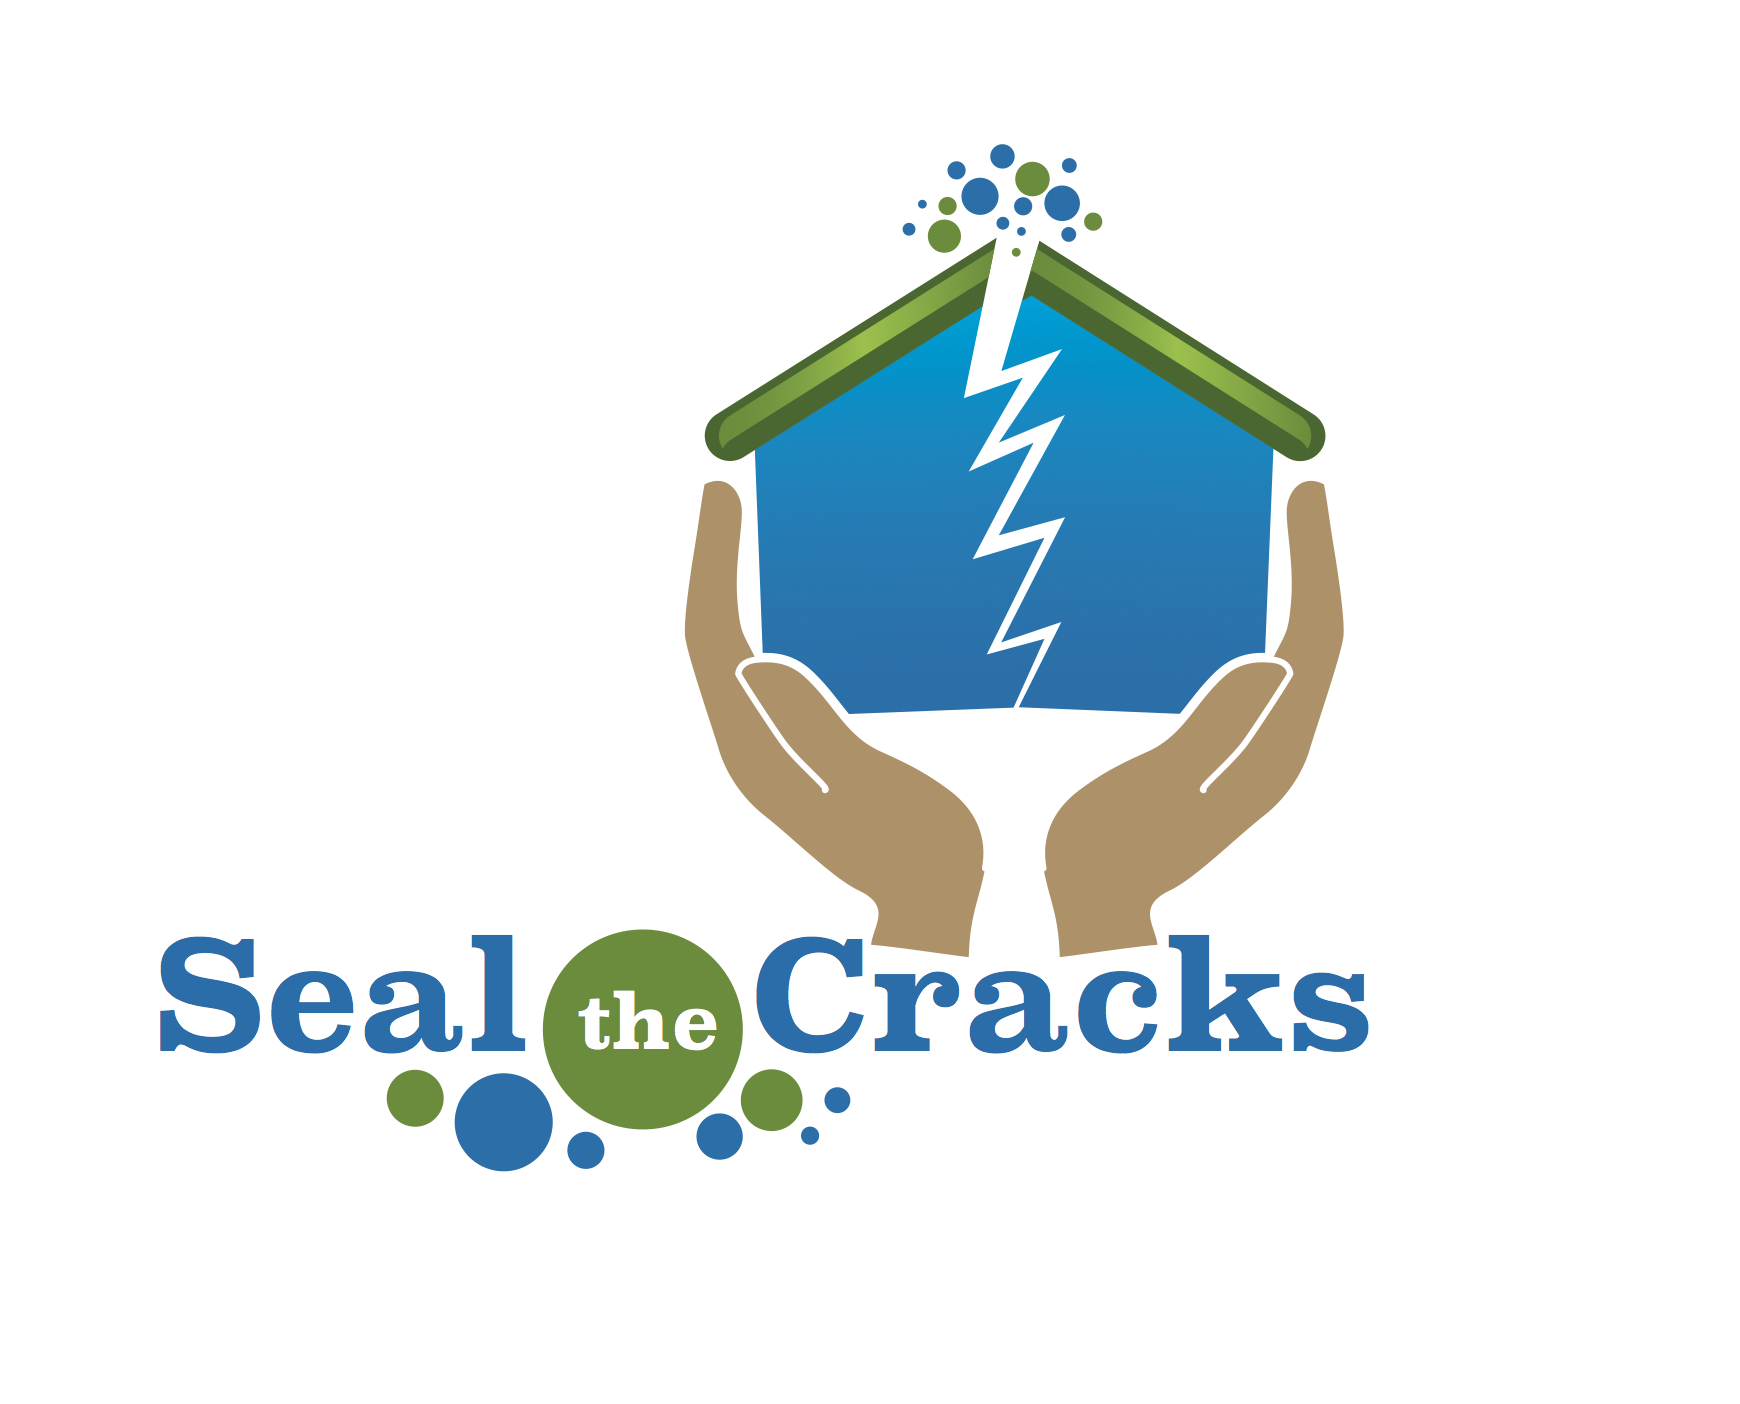 Seal_the_Cracks_full_logo.jpg